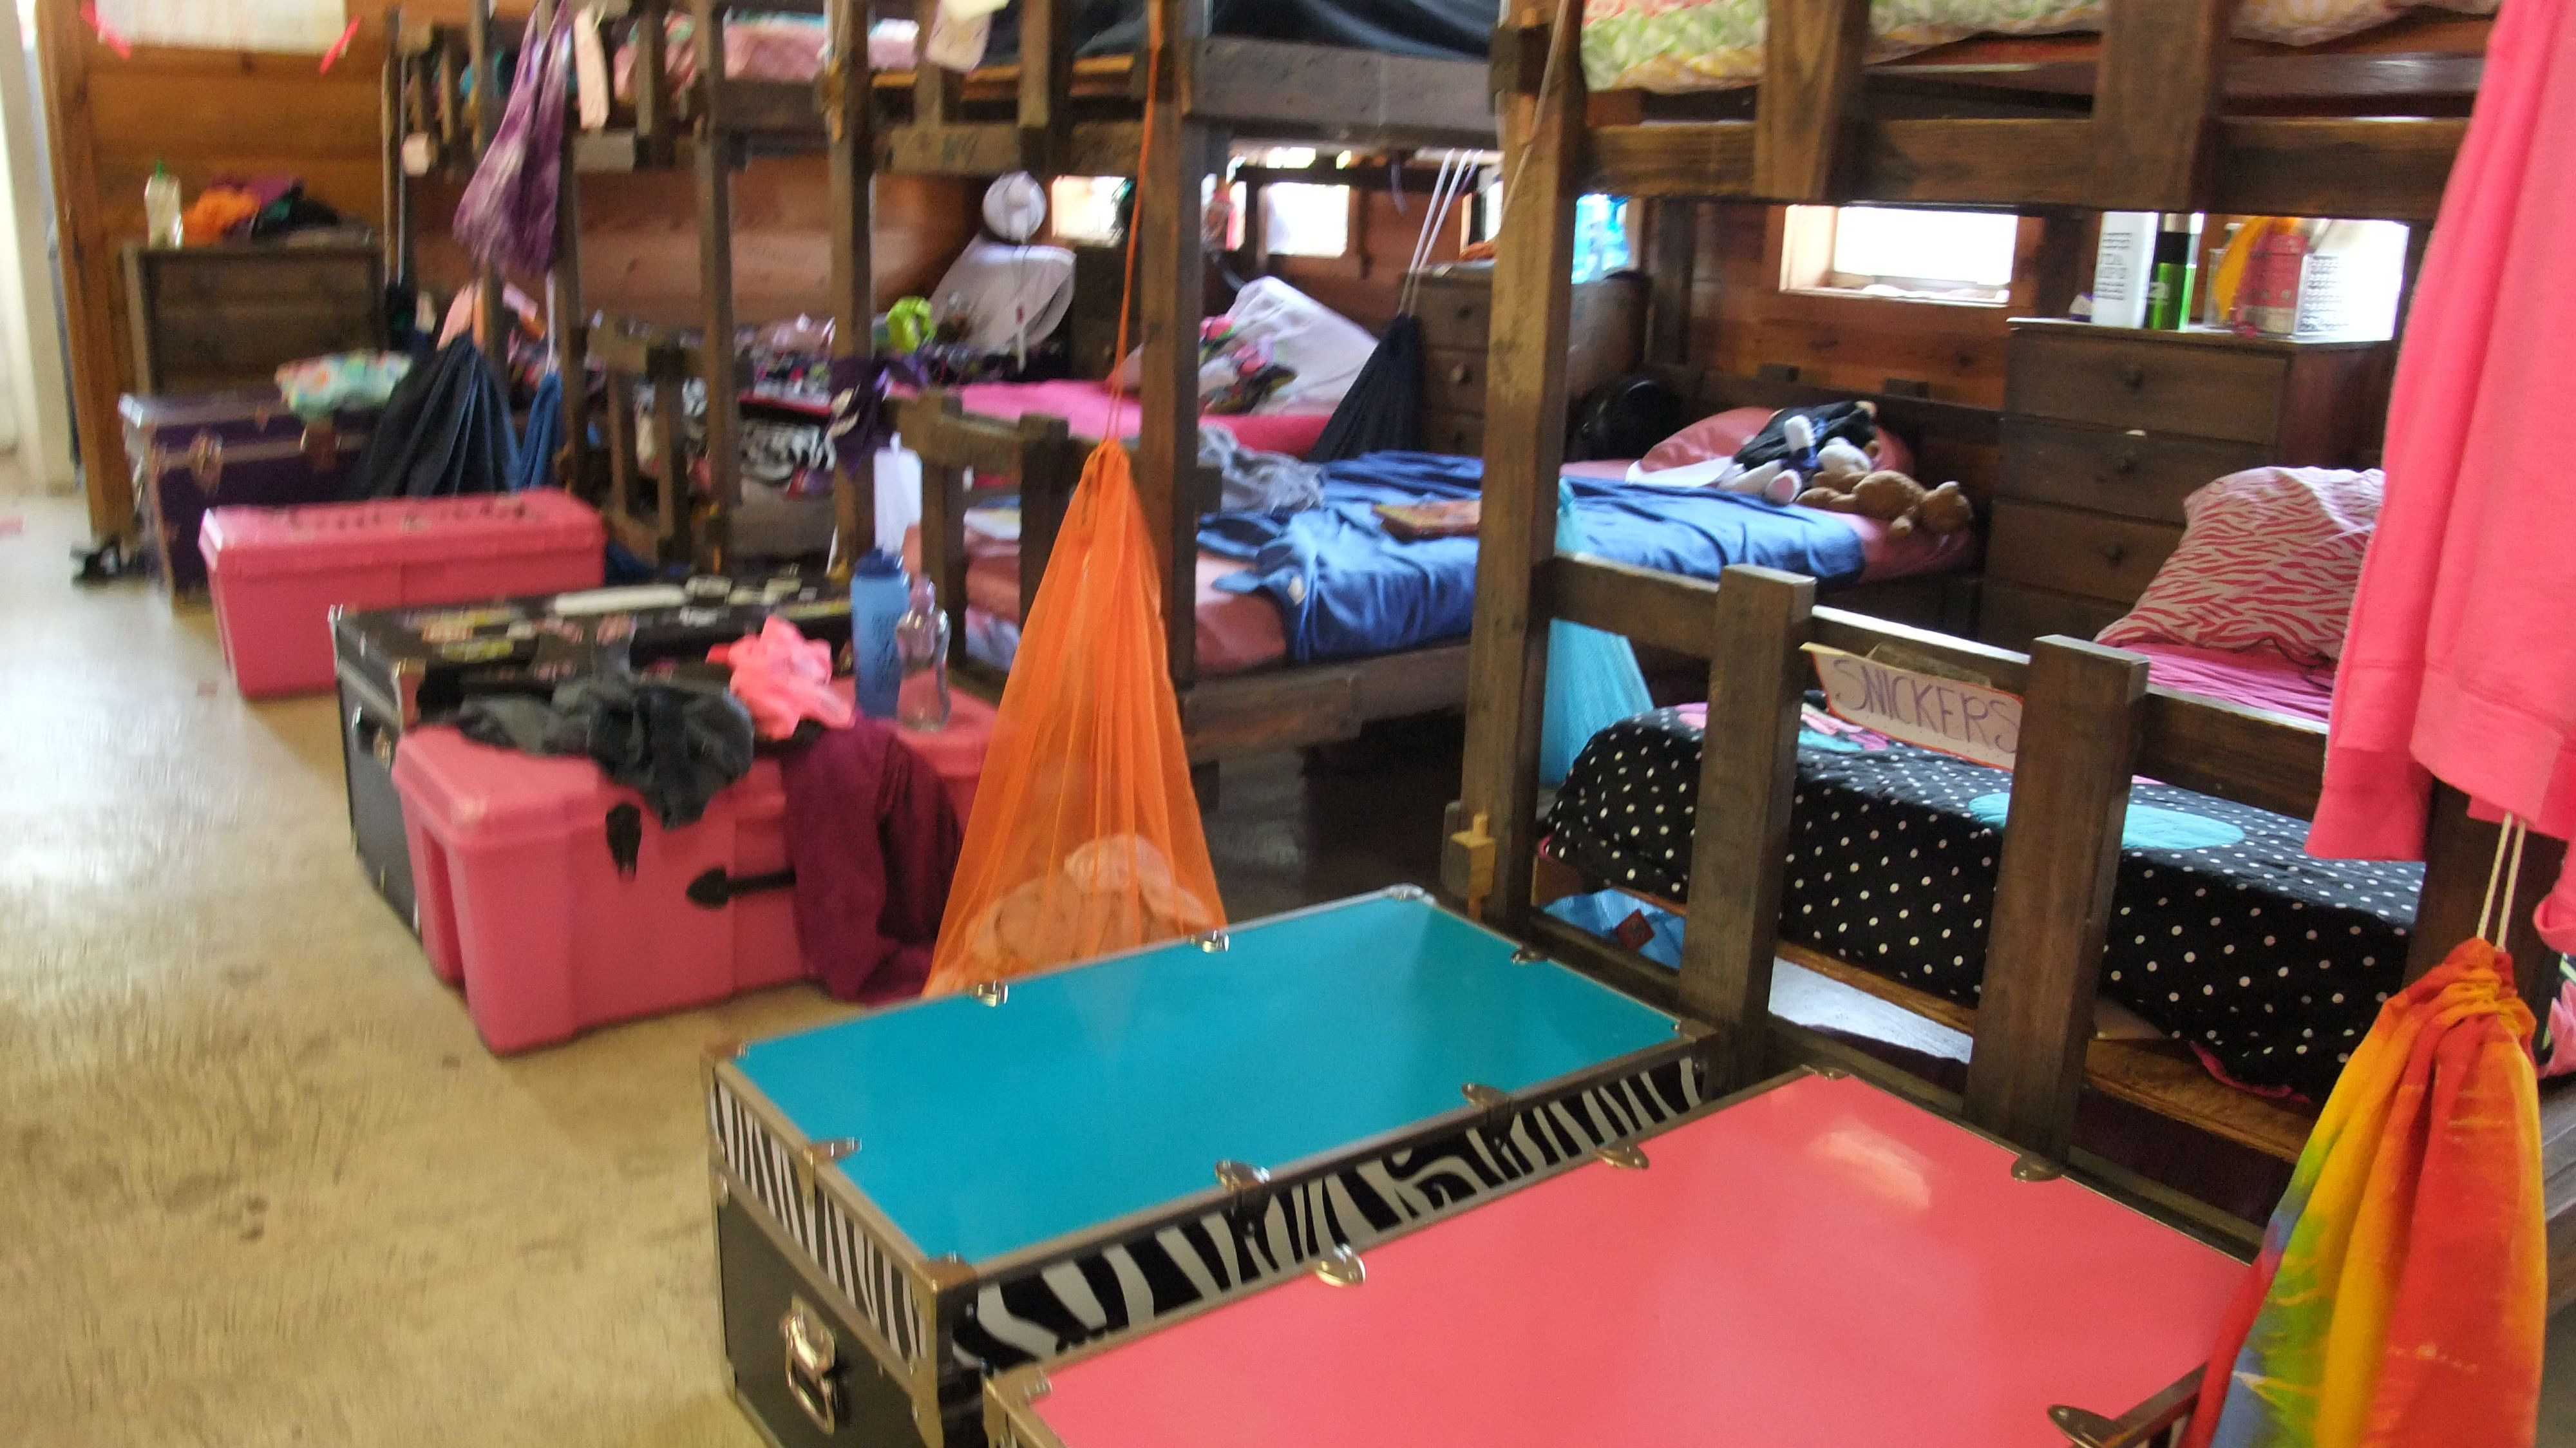 13 Summer Camp Bunk Beds Magnificent And Also Attractive Too In 2020 Summer Camp Counselor Sleepaway Camp Summer Camps For Kids